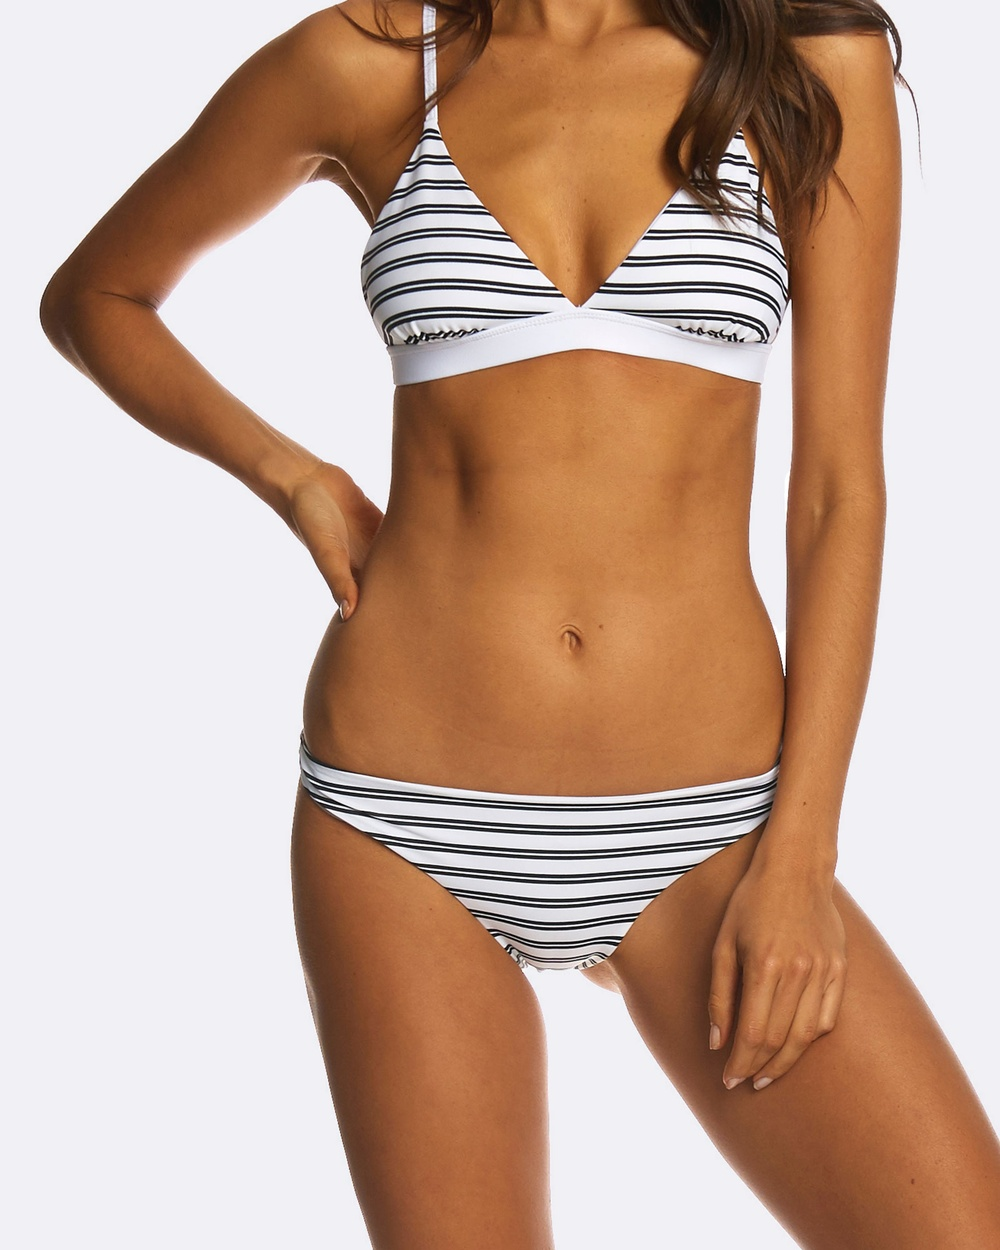 Photo of RH Swimwear RH Swimwear Cheeky Low Riser Bikini Bottoms Bikini Bottoms Double stripe Cheeky Low Riser Bikini Bottoms - The Cheeky Low Riser Bikini Bottoms from RH Swimwear are a flattering seamlessly constructed pant, with just the right amount of cheekiness! Here in a classic black and white Double stripe print, exclusive to the brand. Our model is wearing size XS bikini bottoms. She usually takes a standard AU 8, is 5' 11